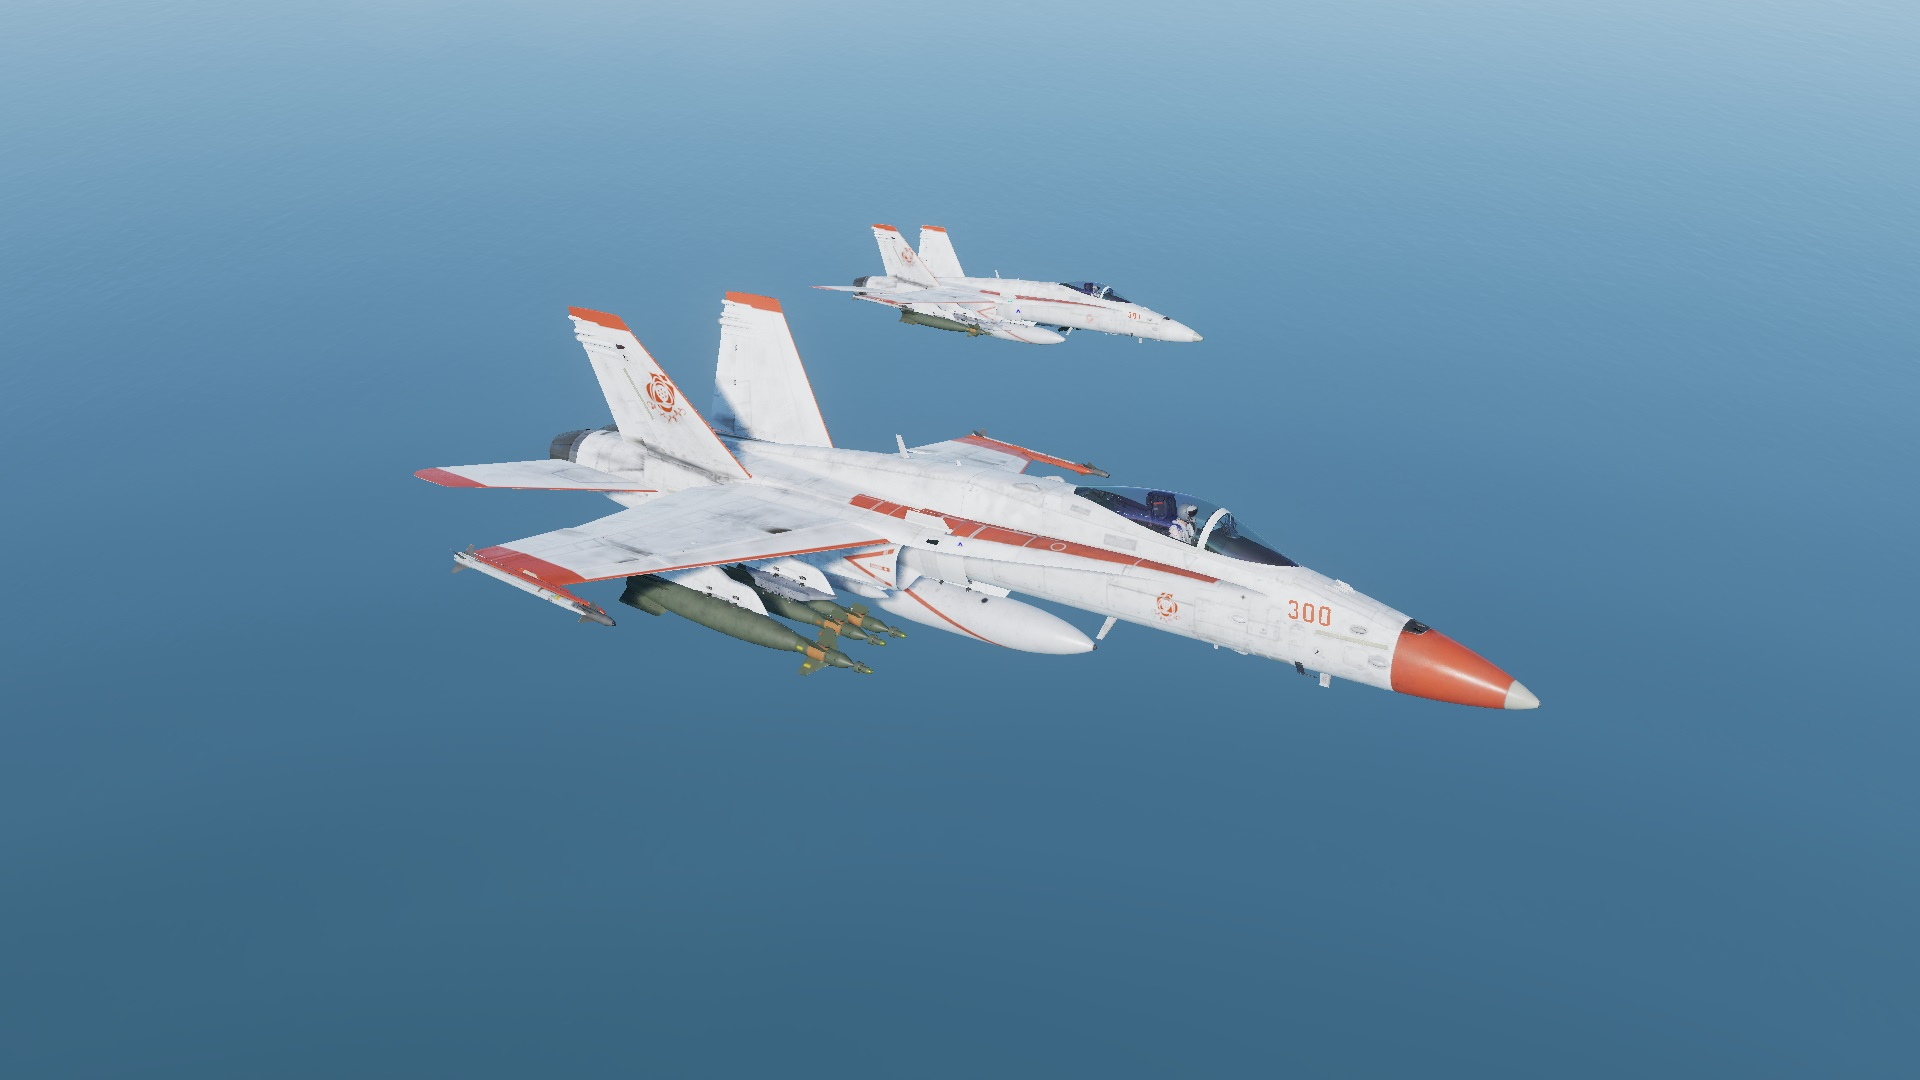 3rd Royal Guards FA-18 Hornet *fictional*